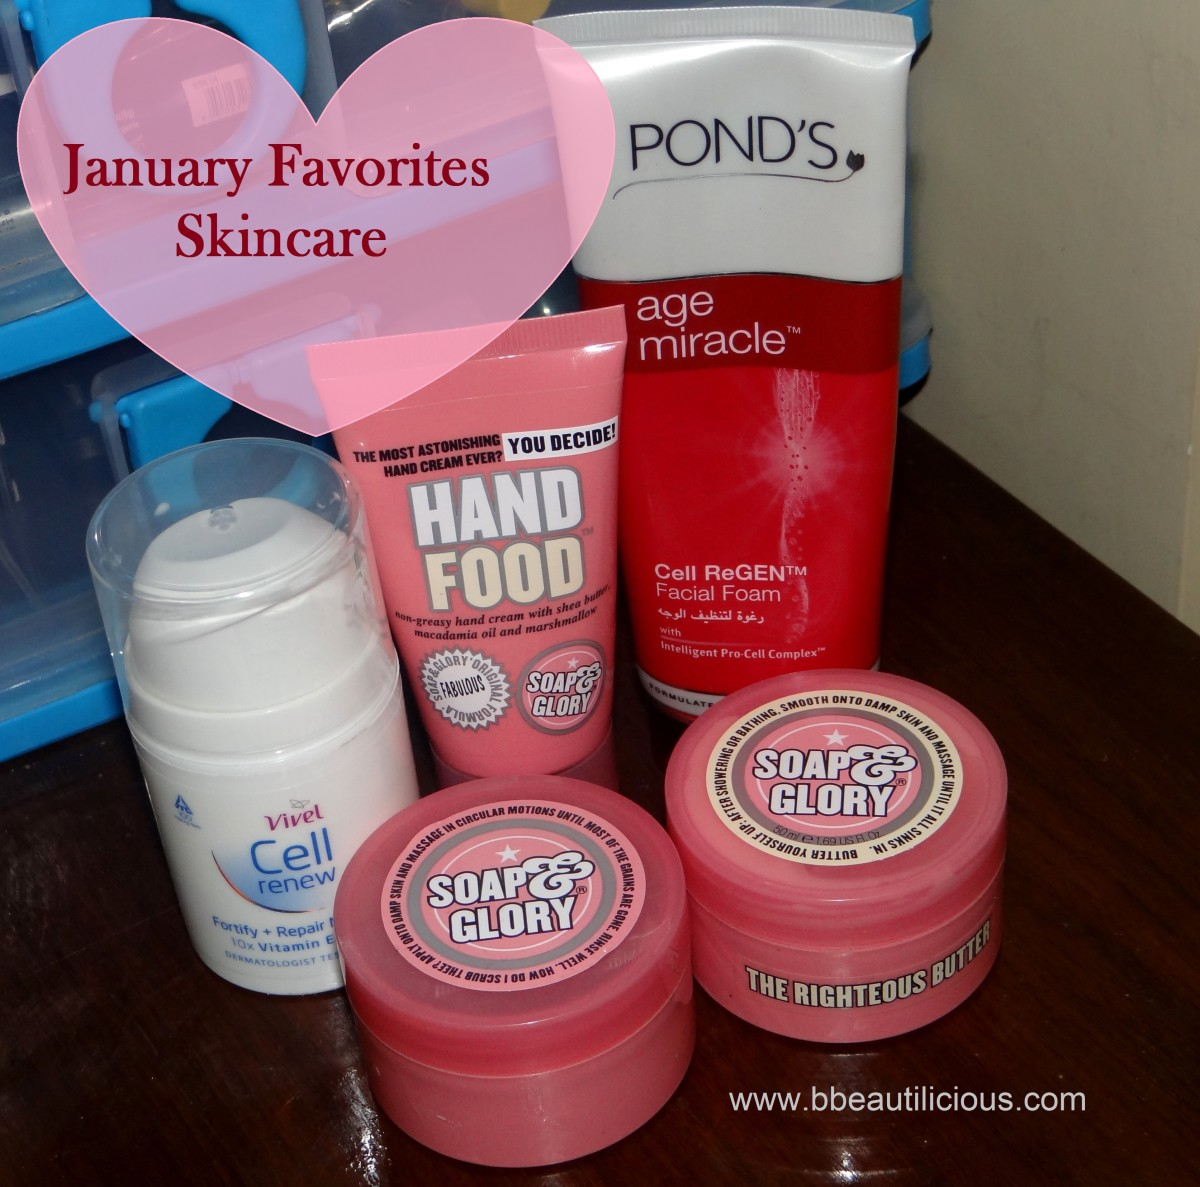 January favorites skincare